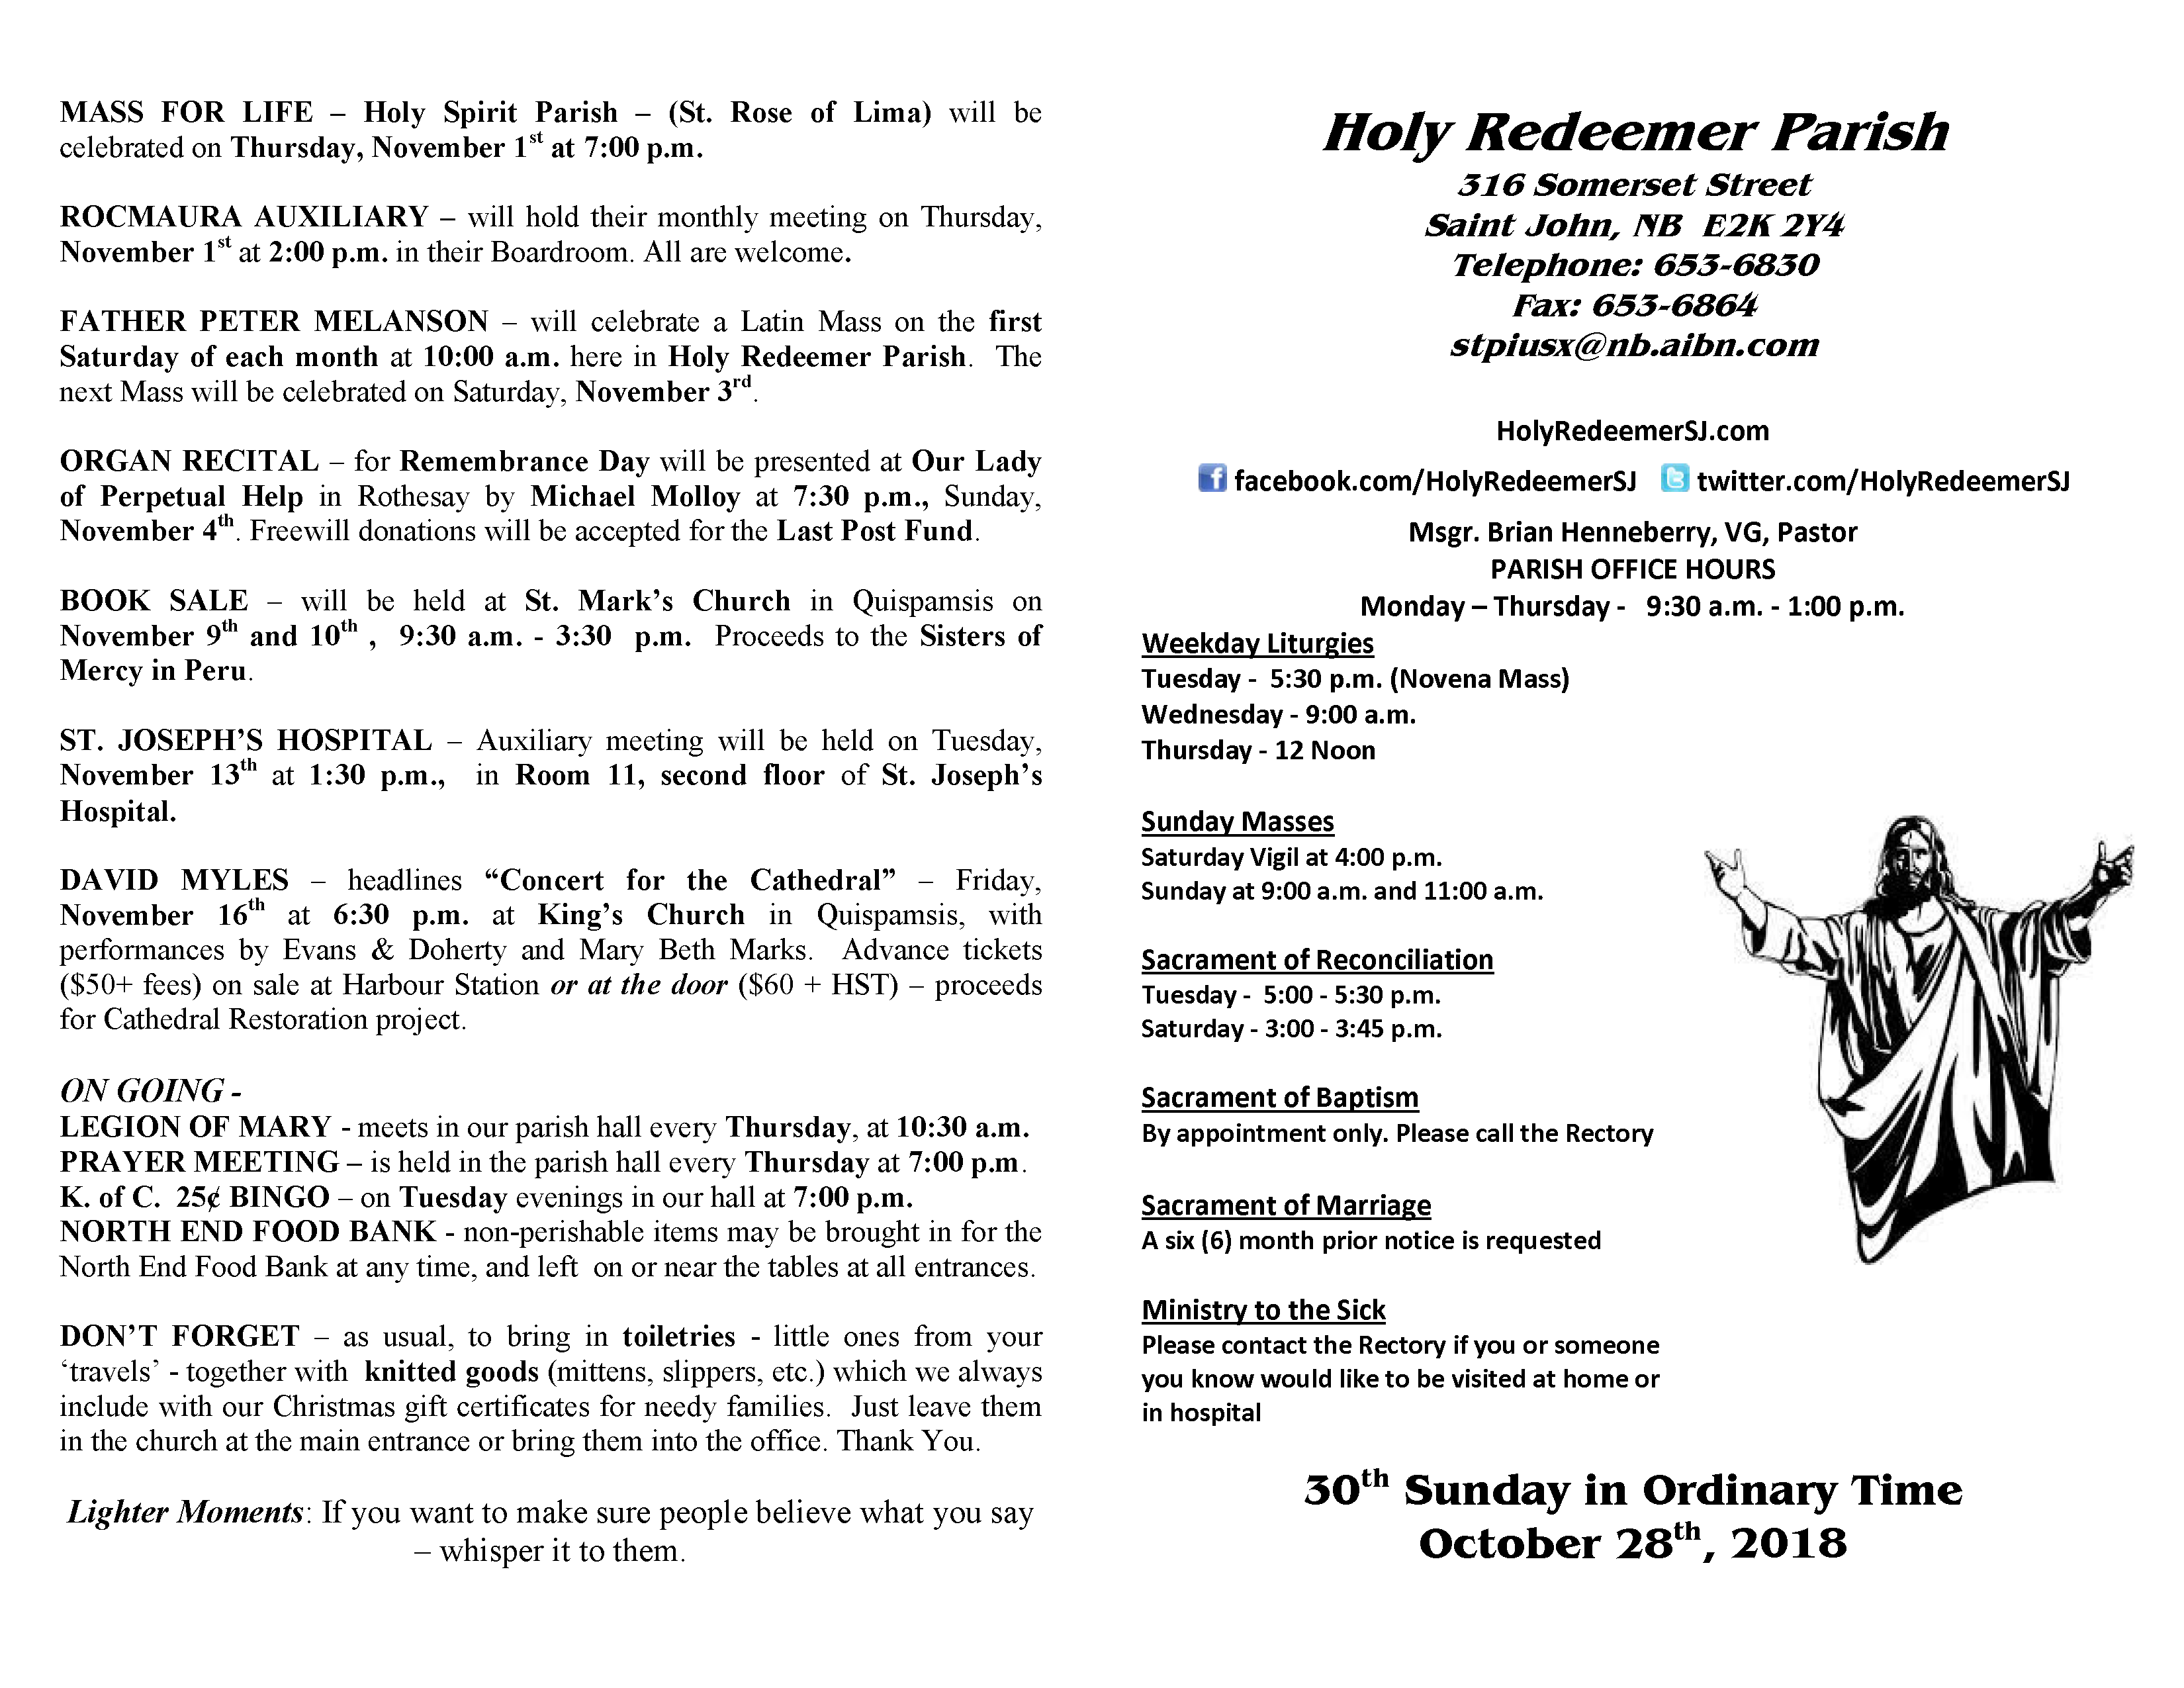 October 28 Bulletin – Holy Redeemer